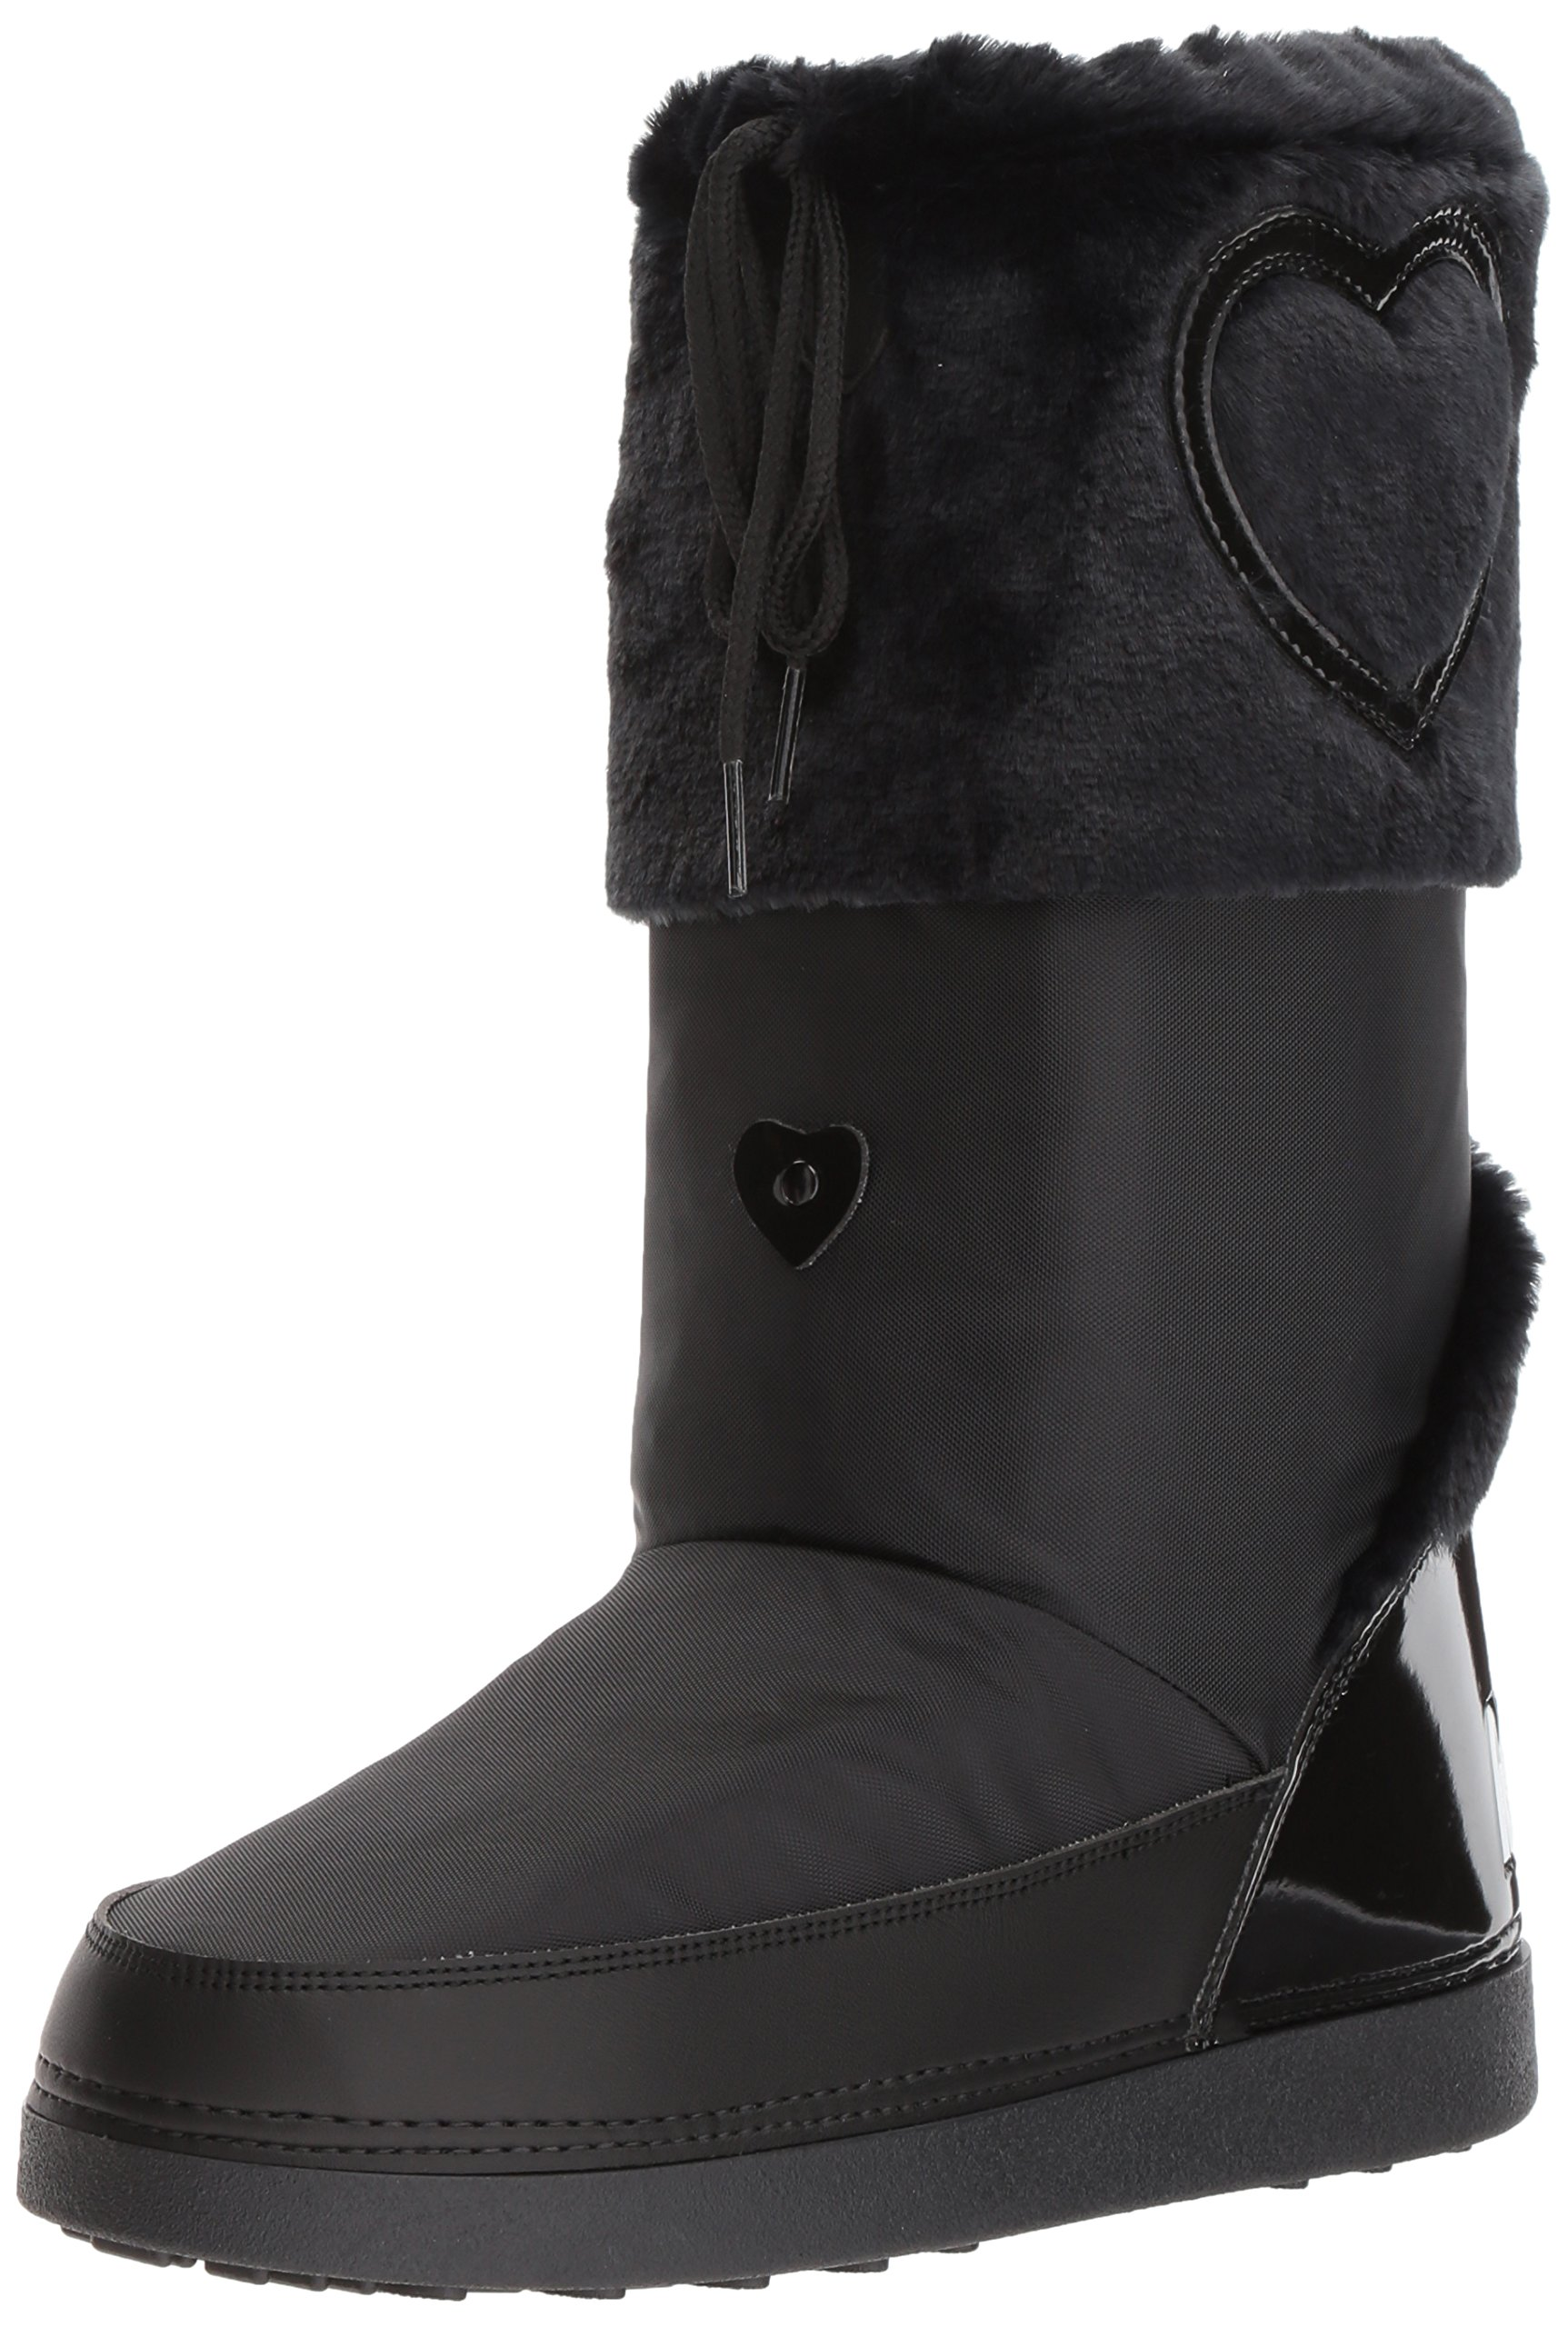 Love Moschino Women's JA24232G04JK200A Fashion Boot, Black, 37-38 M EU (7-8 US)